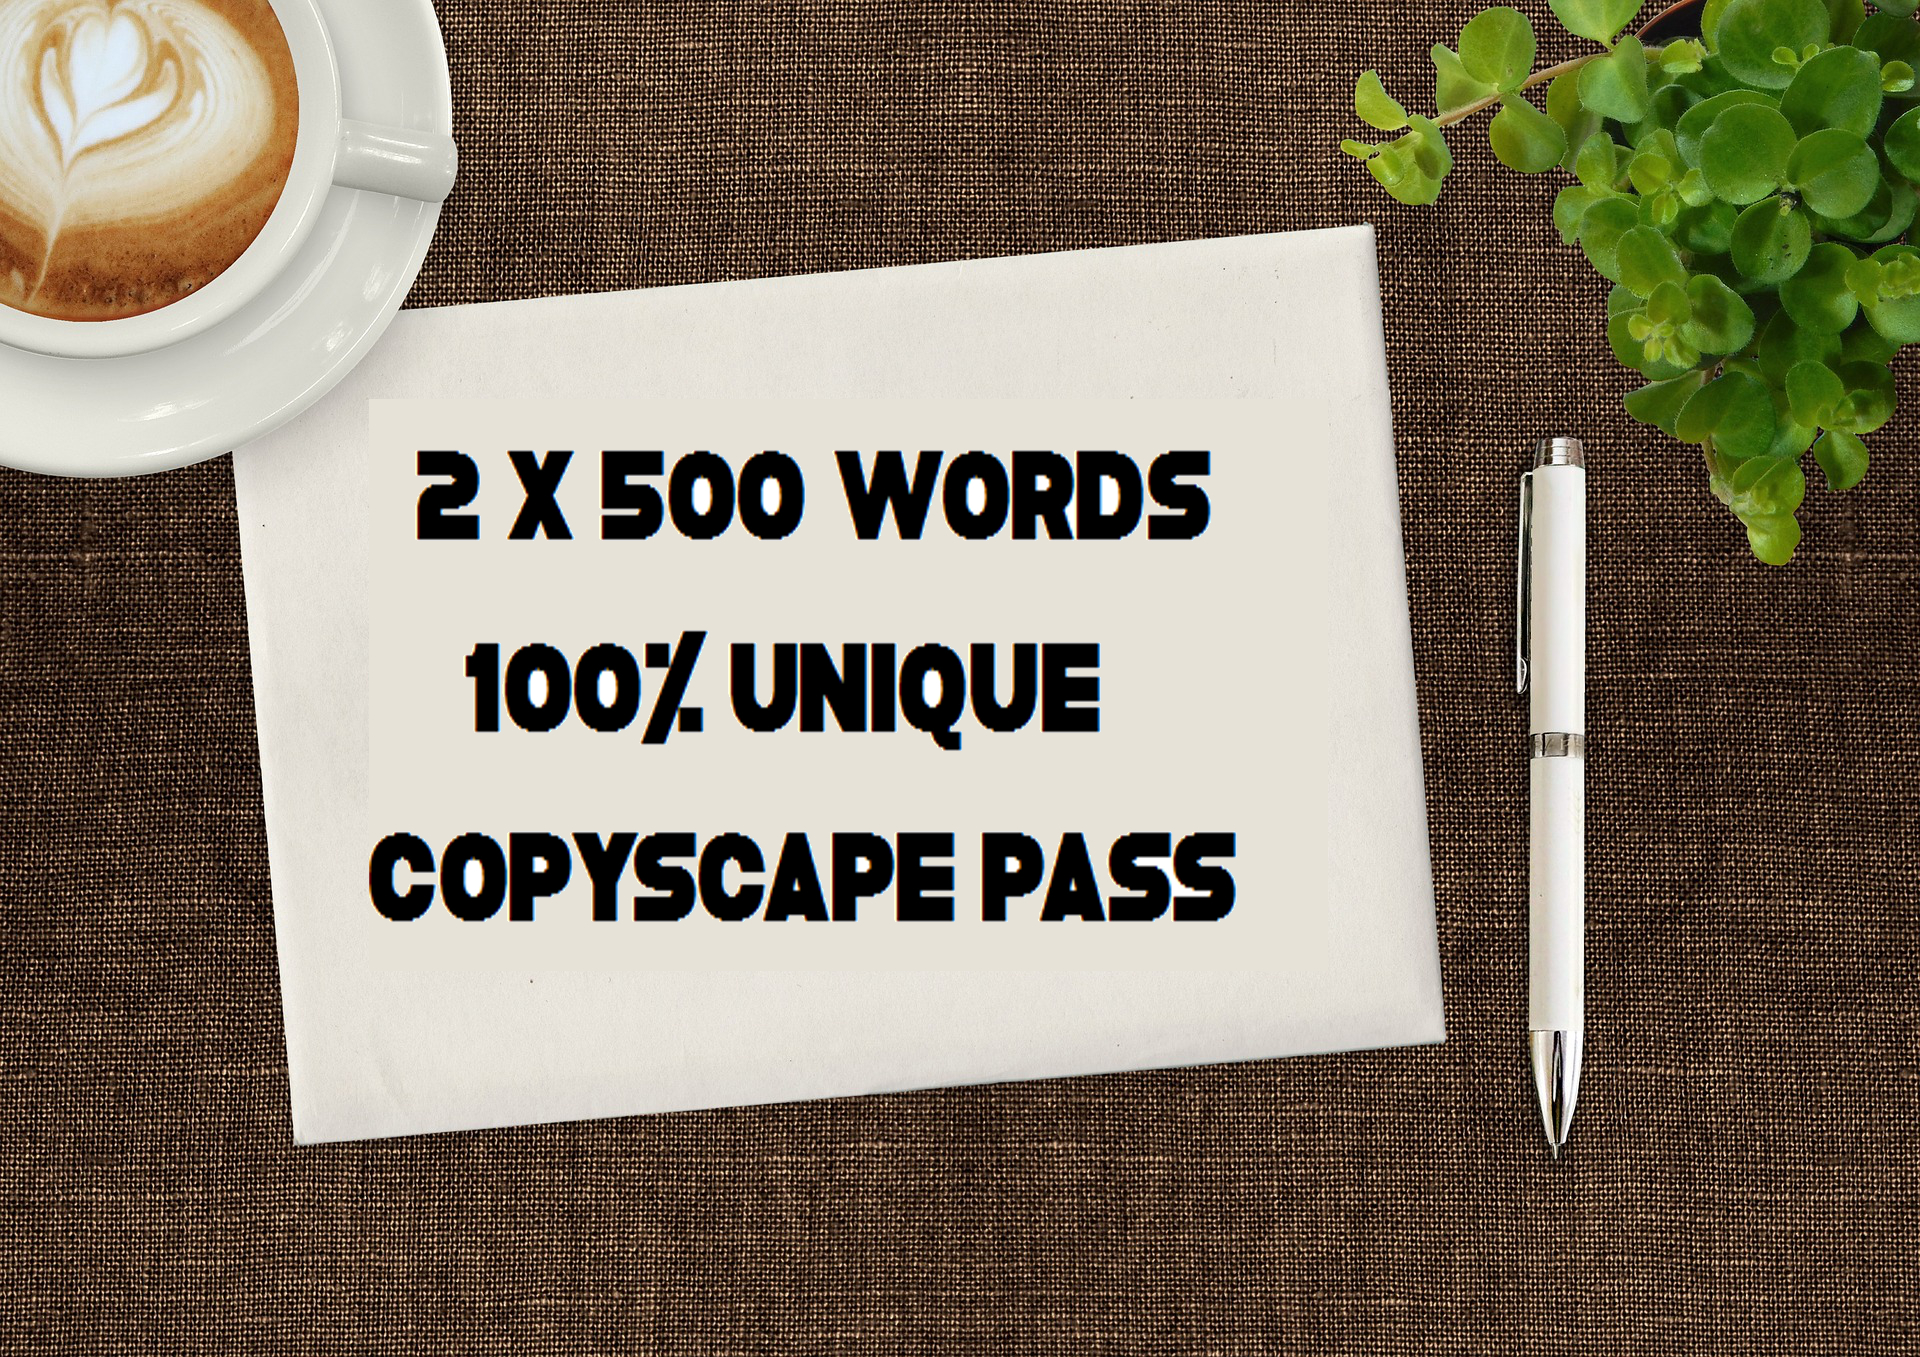 I Will Write 2x500 Word HQ Articles